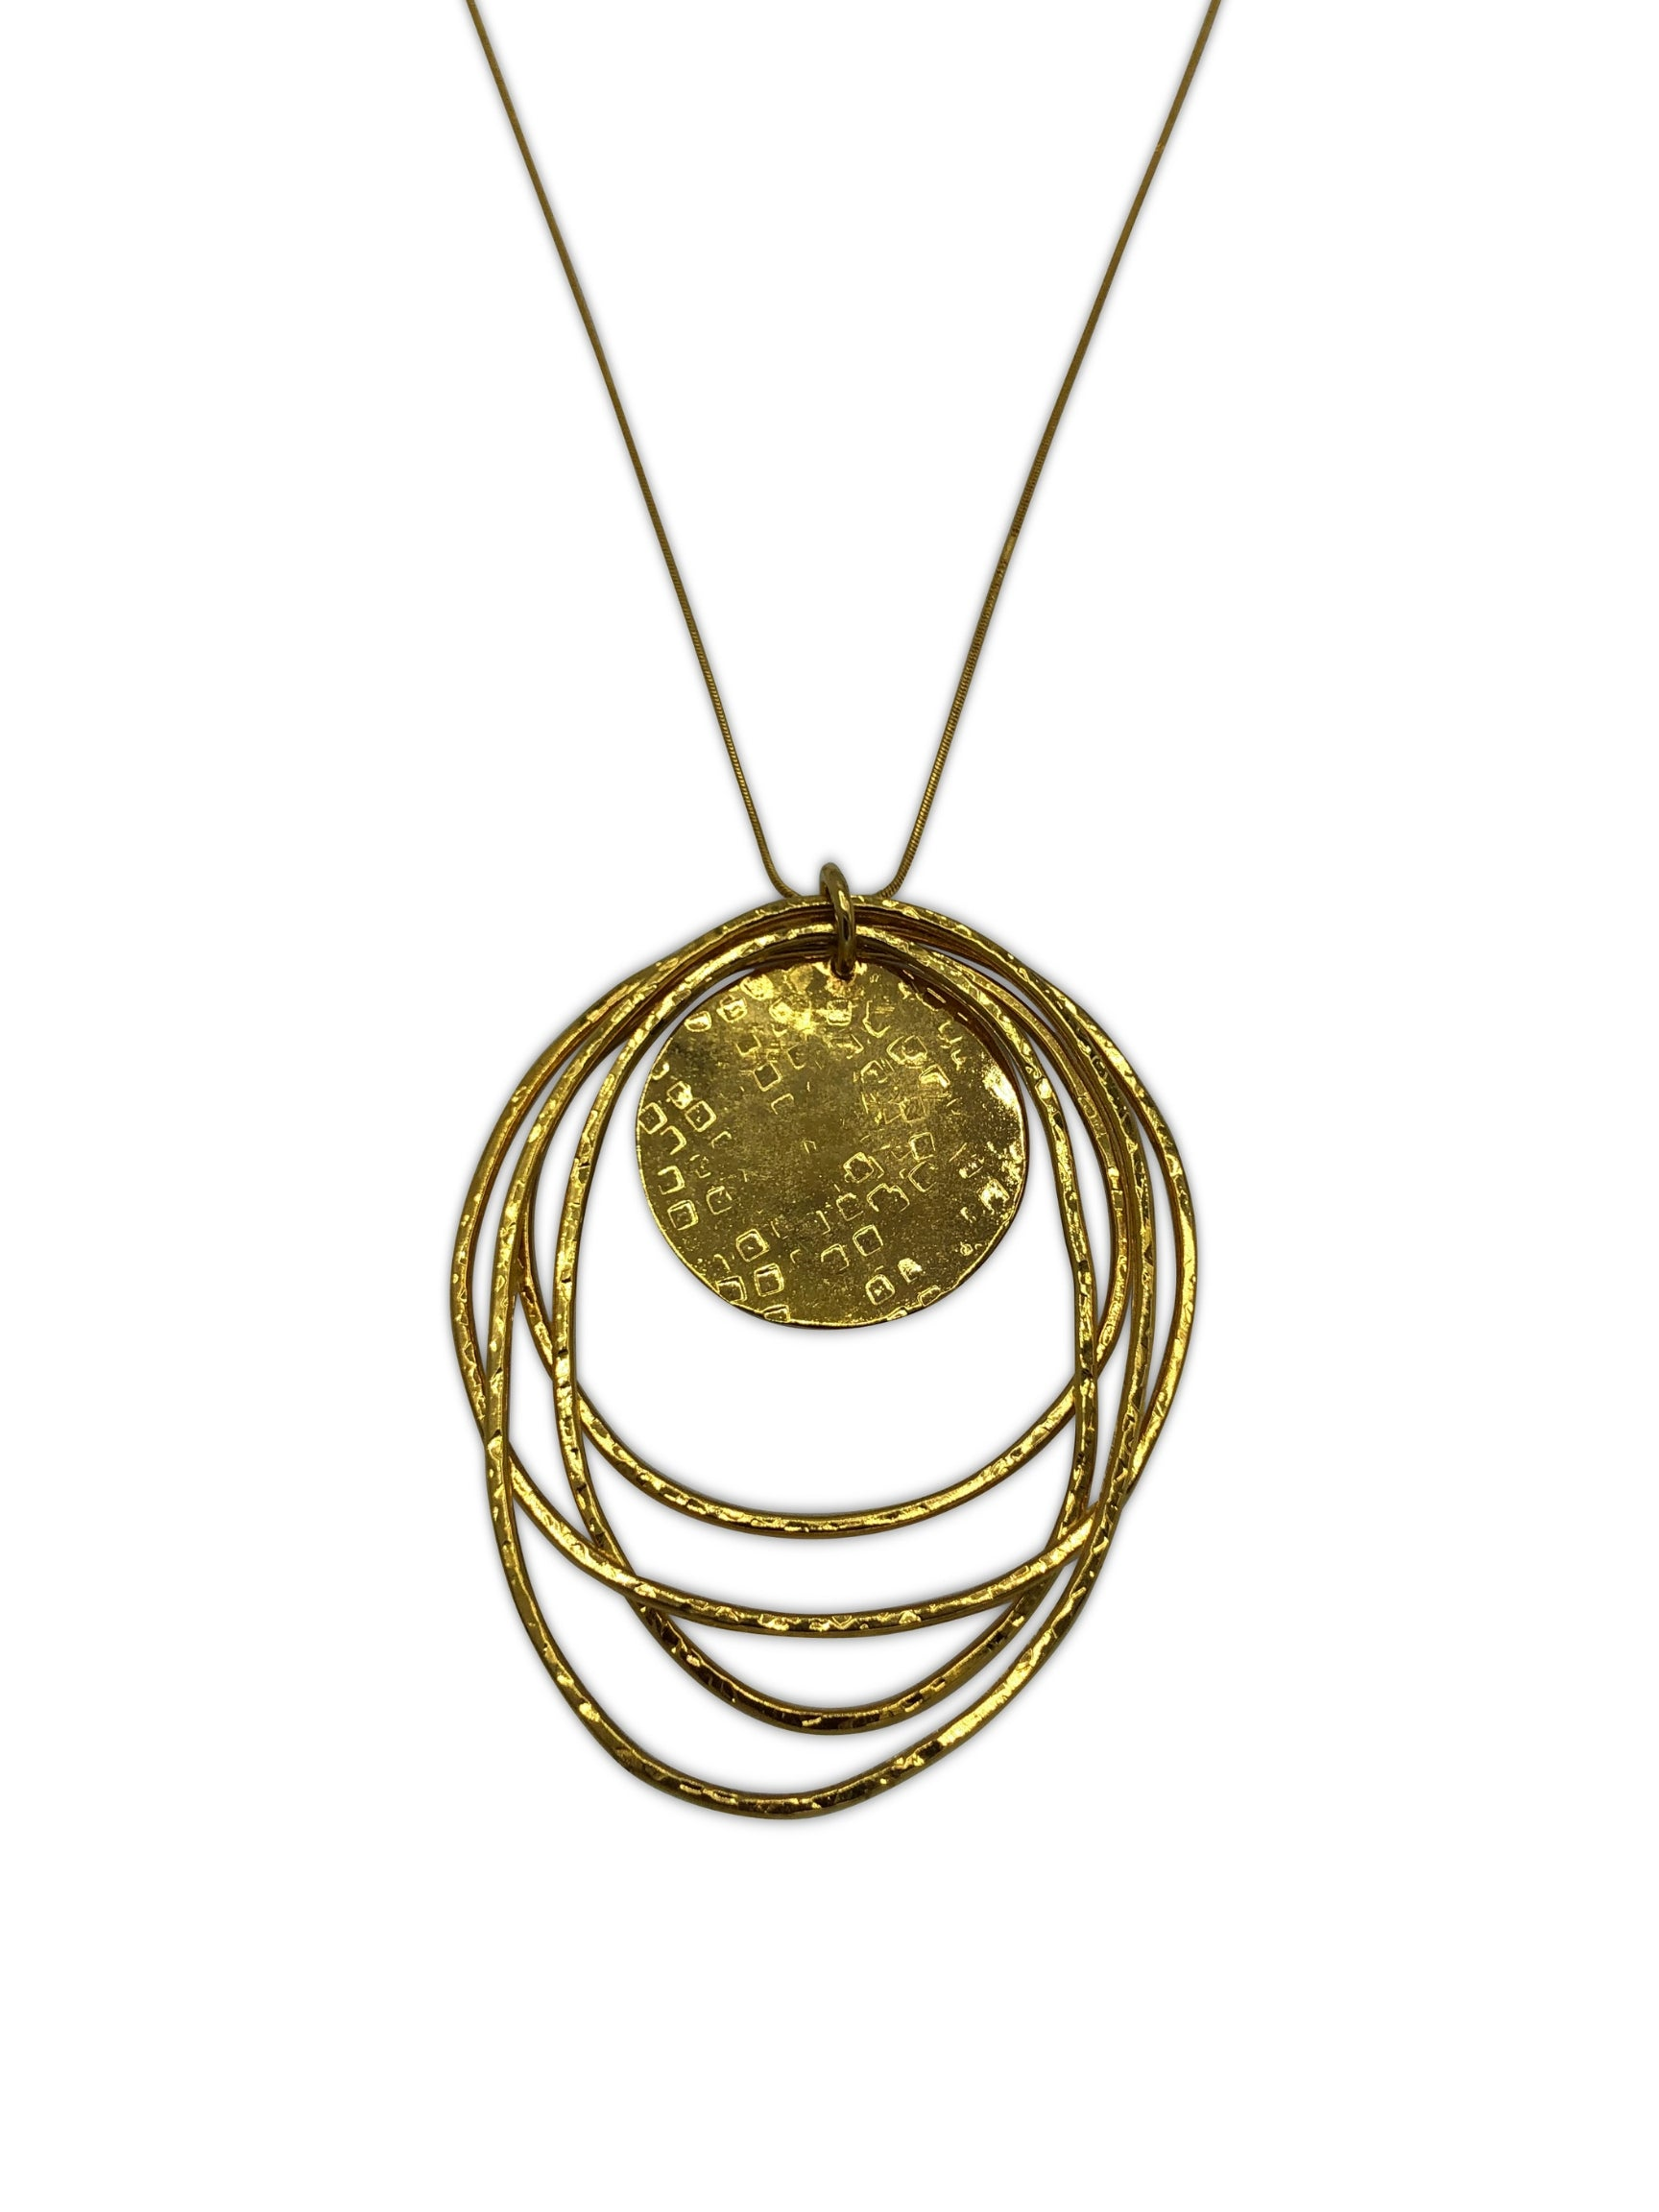 Peacock Dawn Gold Pendant Chain Necklace-Necklaces-JAREDJAMIN Jewelry Online-JARED JAMIN